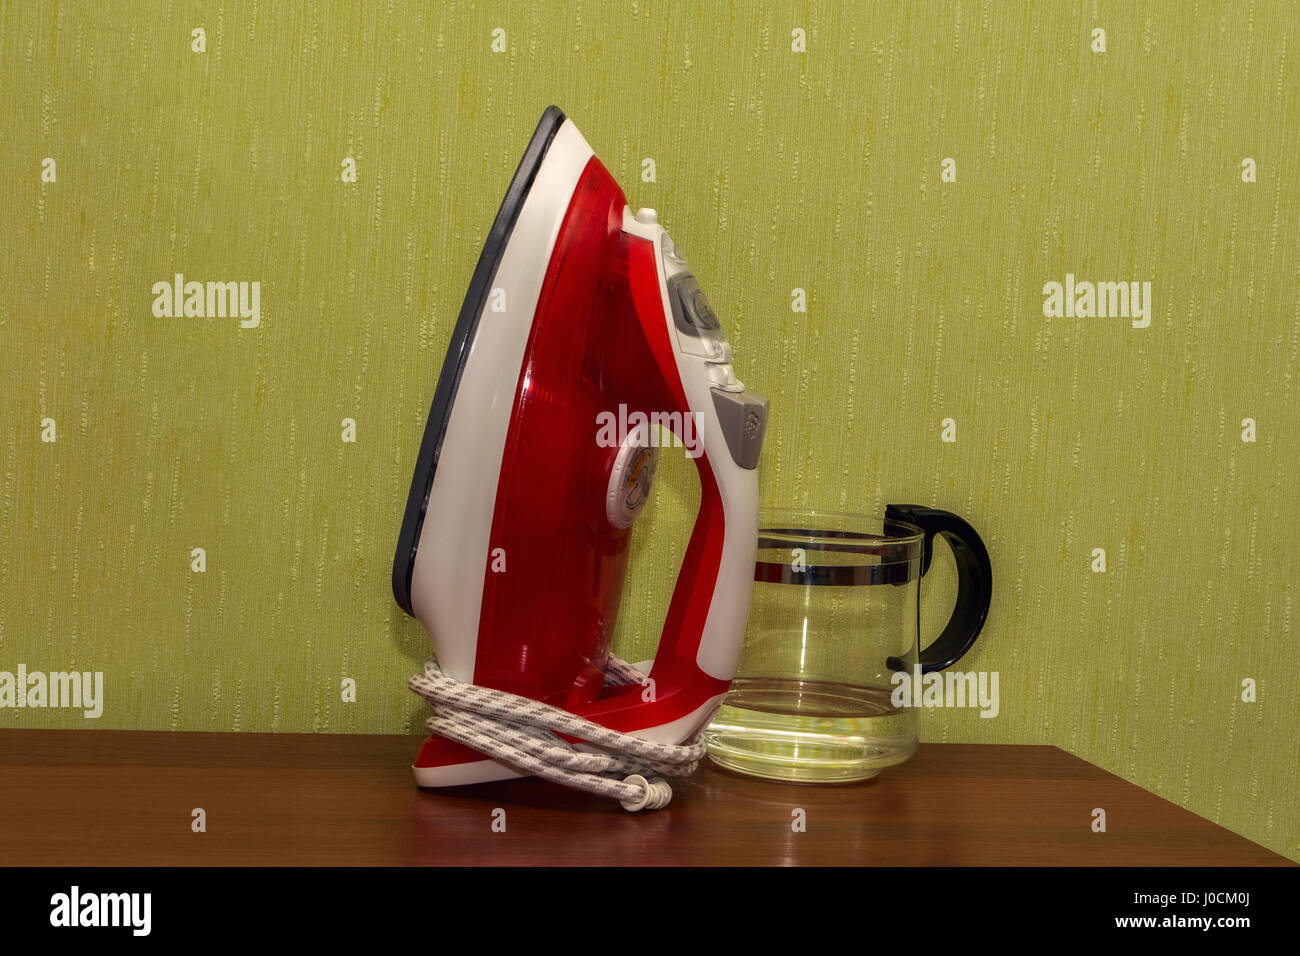 Iron red for ironing clothes on a brown table against a green wall. Stock Photo